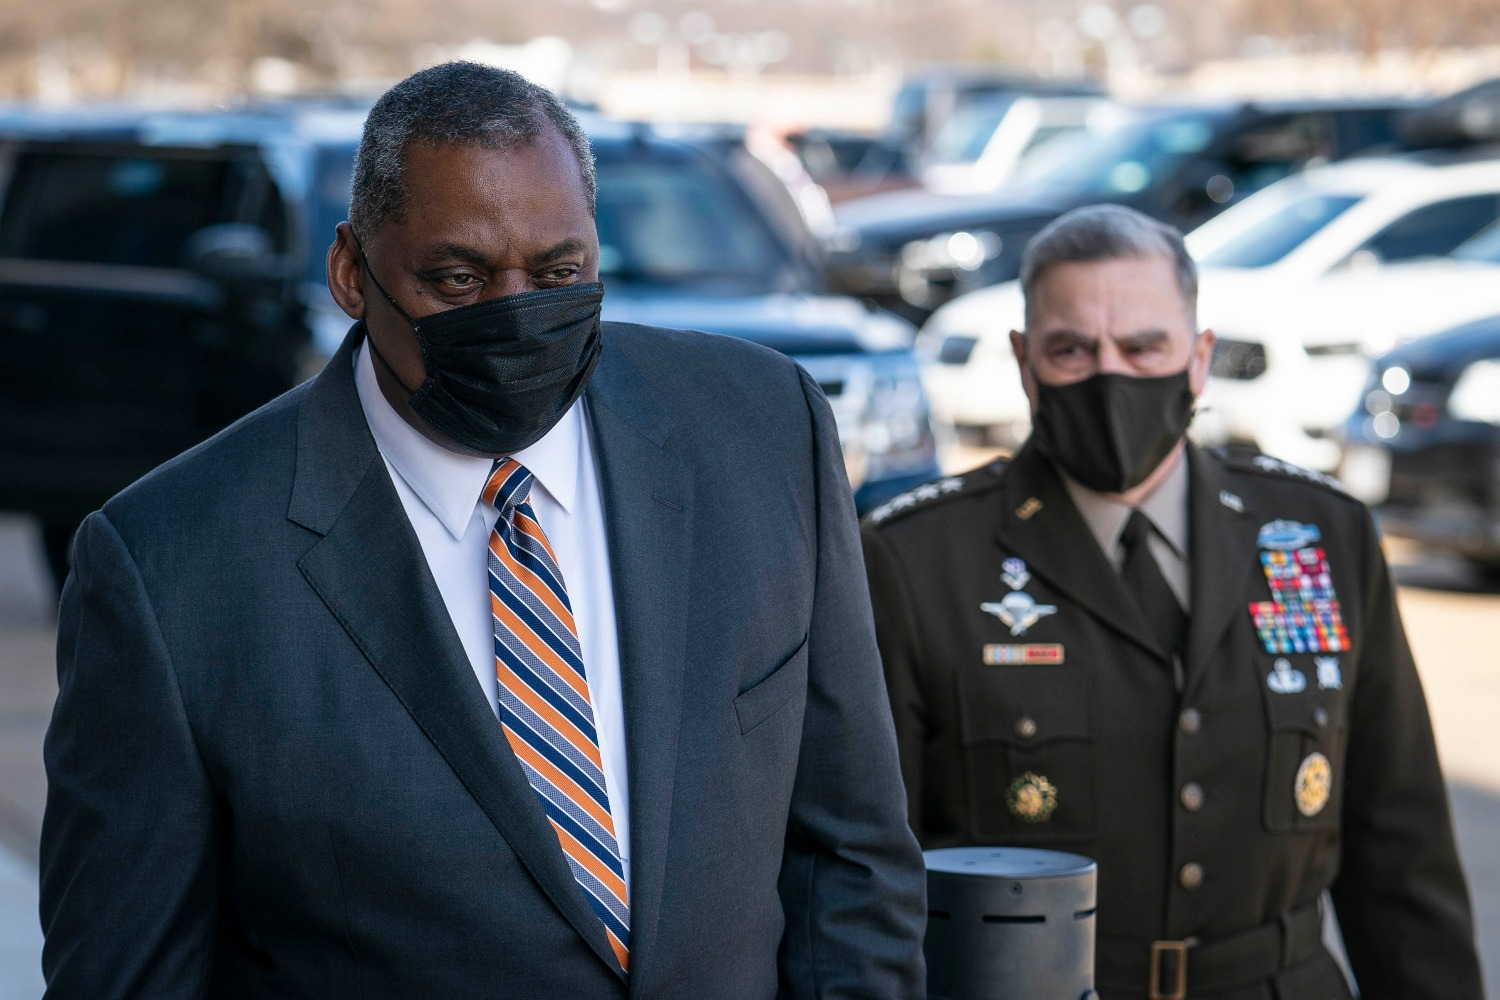 Mark Milley, chairman of the Joint Chiefs of Staff, escorts incoming Secretary of Defense Lloyd Austin to the Pentagon on Austin's first day in his new role in Arlington, Virginia, on Jan. 22.